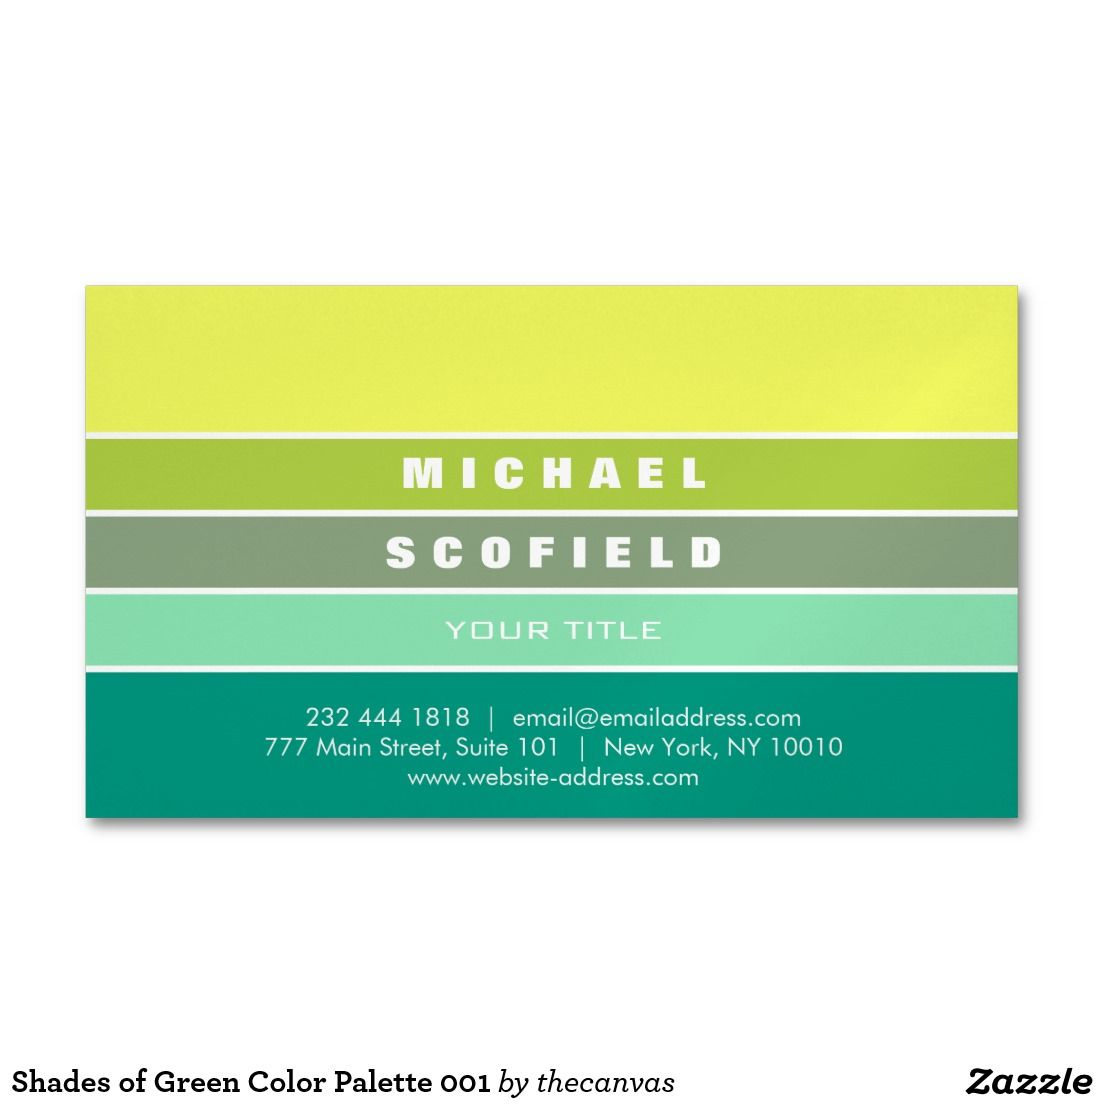 Shades of green color palette 001 business card magnet pinterest shades of green color palette 001 business card magnet reheart Gallery